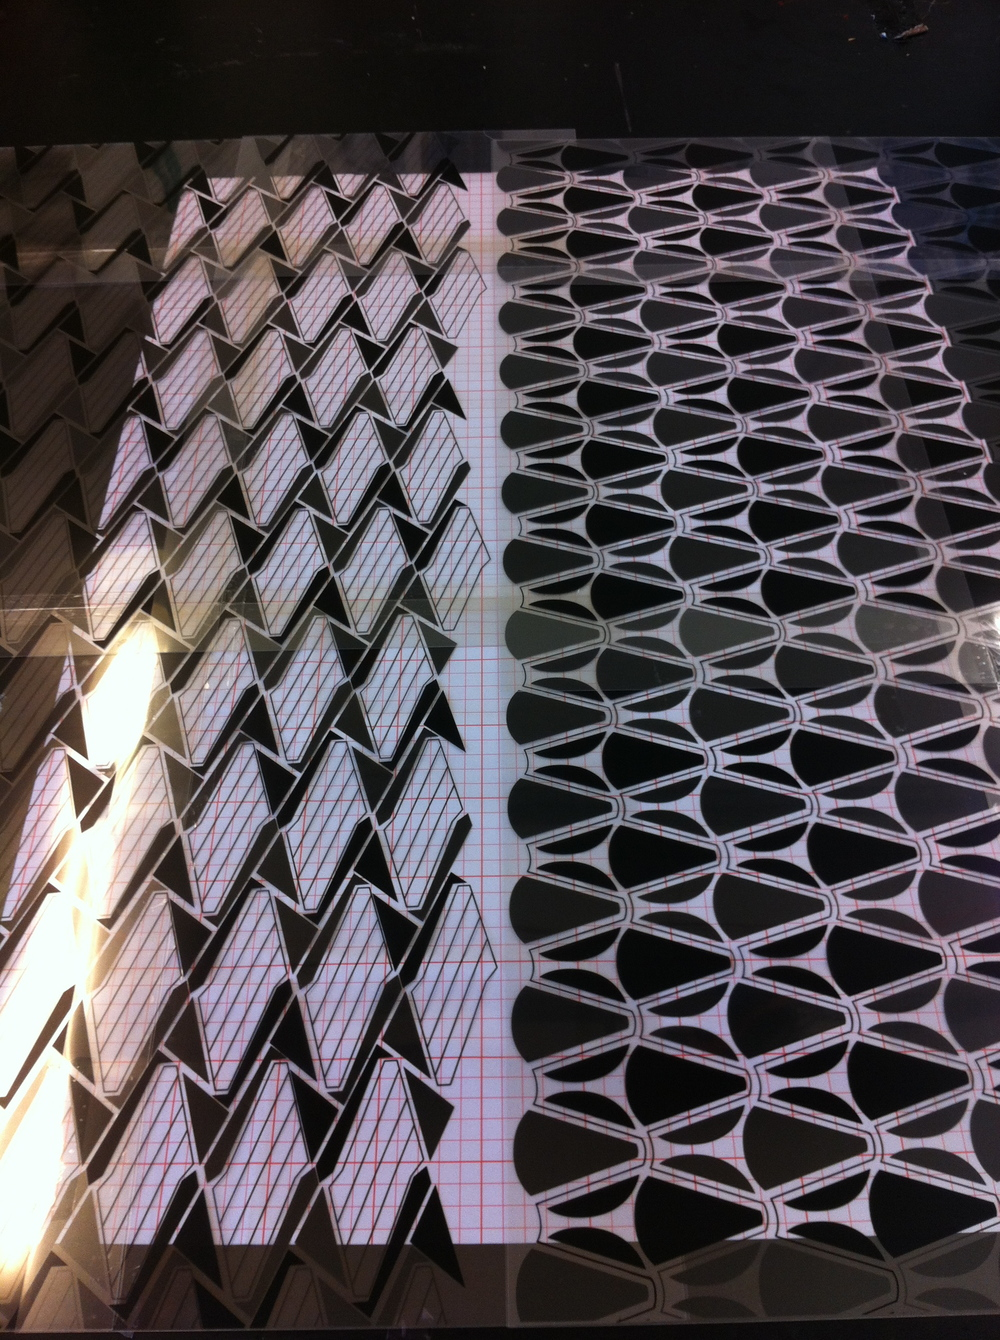 Colour separations printed onto acetates in preperation for exposing onto the screens. Screens are coated with a light sensitive emulsion and once dry are placed in a UV exposure until with the acetates underneath. The light fixes the emulsion to the screen, except where the black of the acetates block it out.